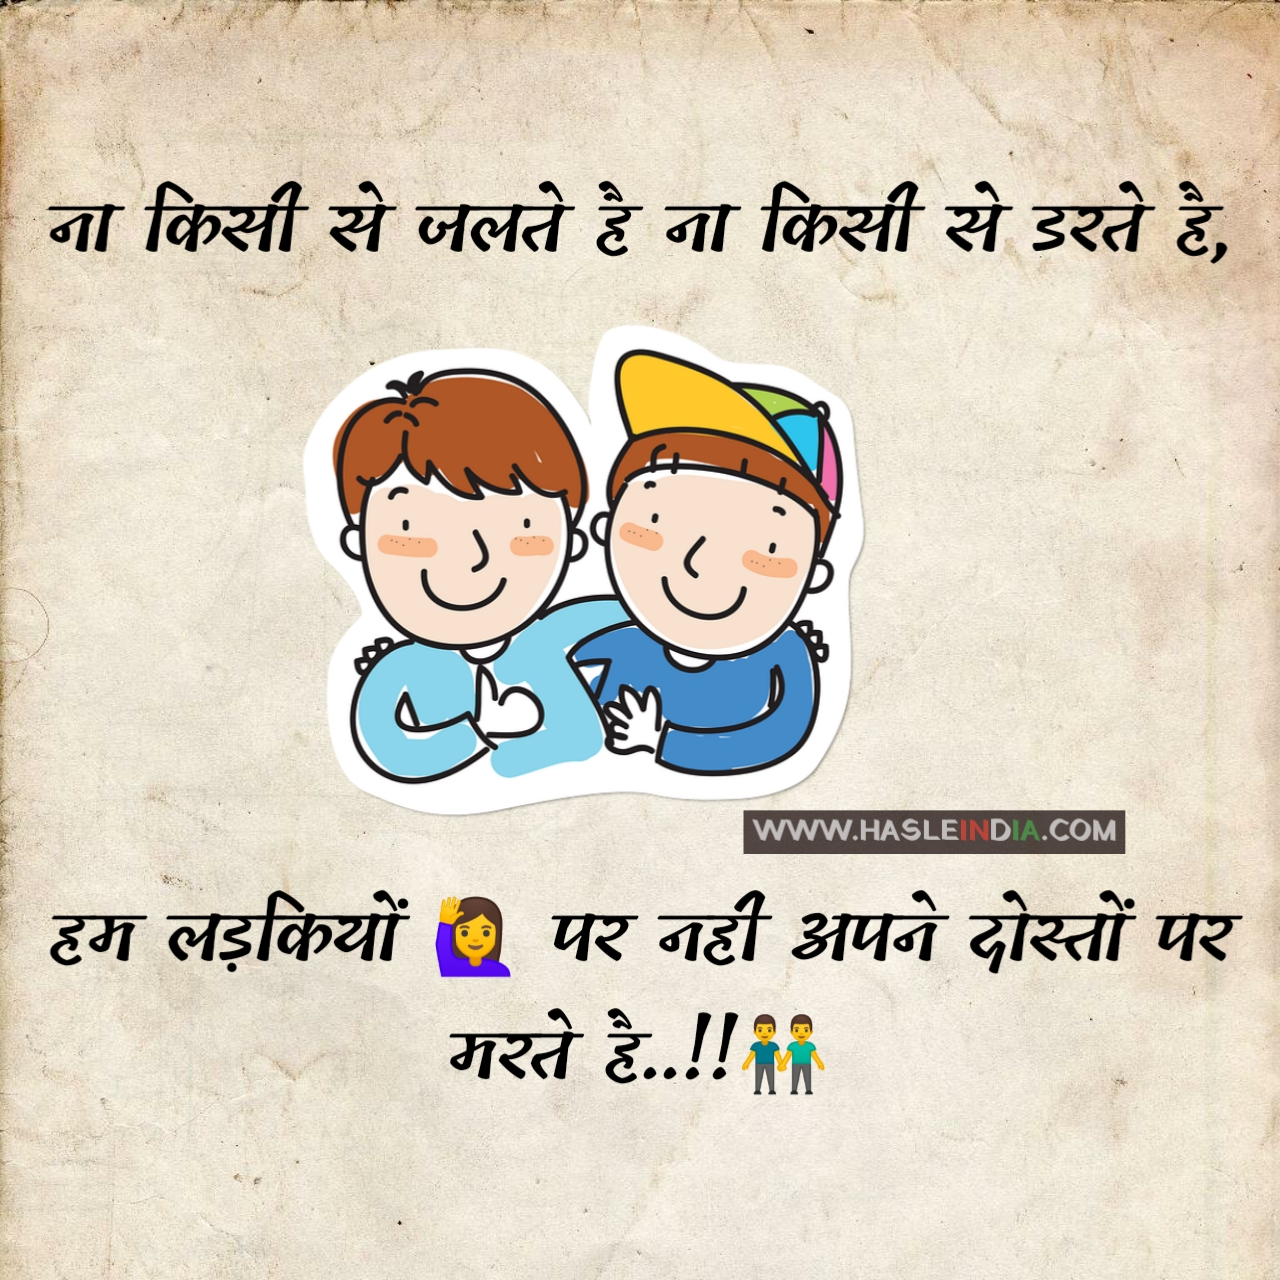 Dosti shayari, hindi friendship shayari, friendship shayari in hindi, friendship shayari pic, friendship shayari images, hindi shayari, shayari in hindi,